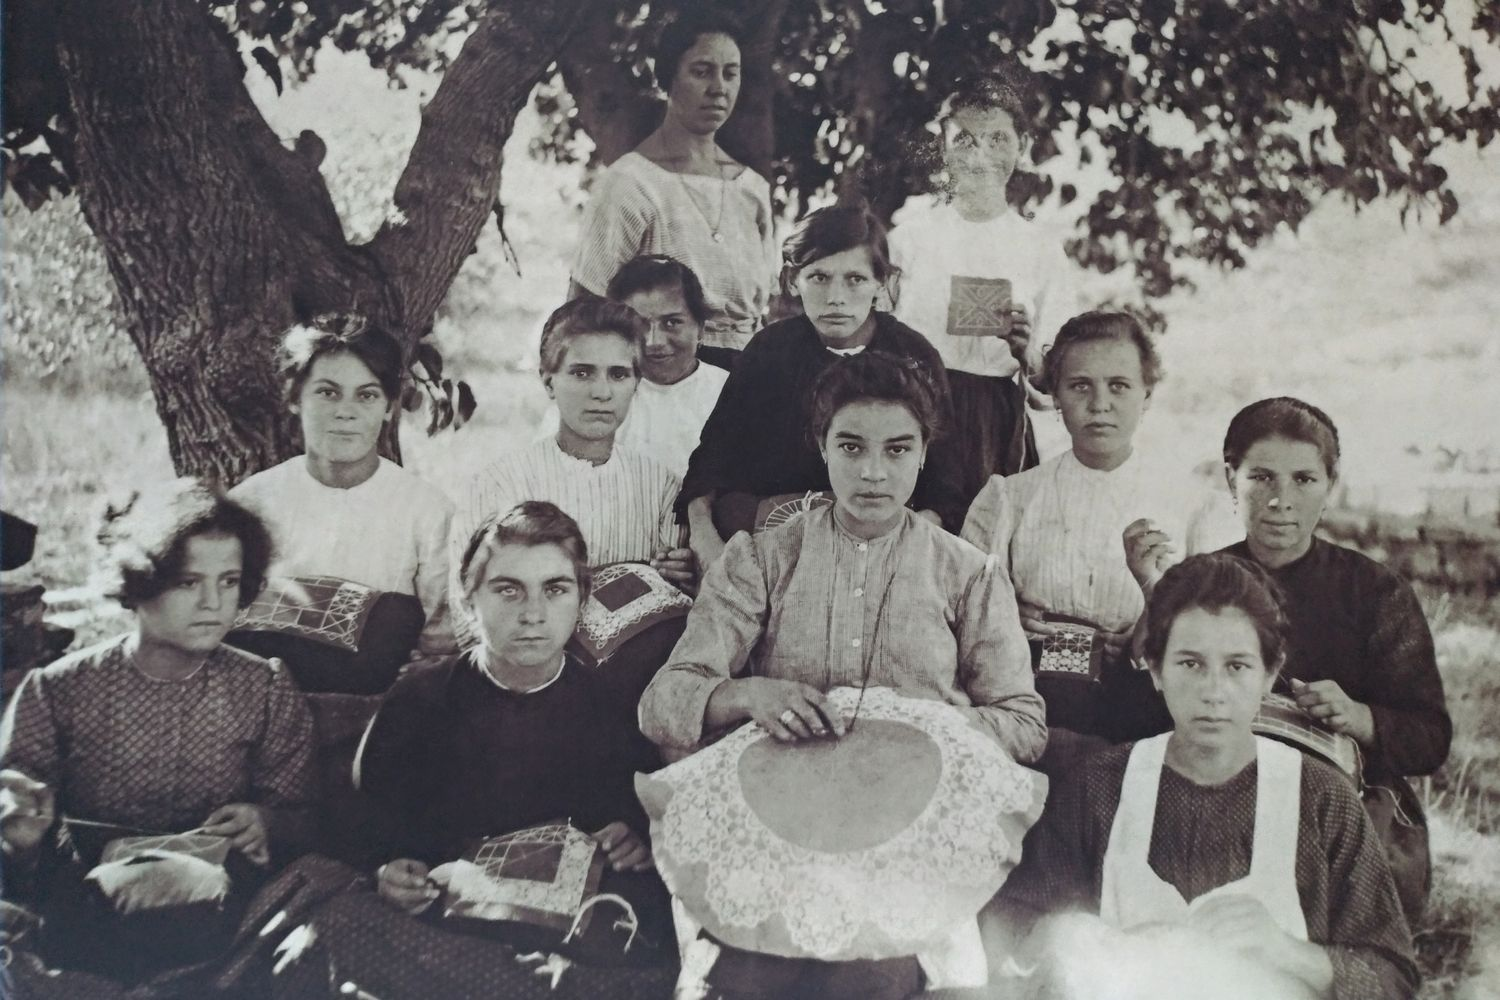 Pag lace school students a hundred years ago